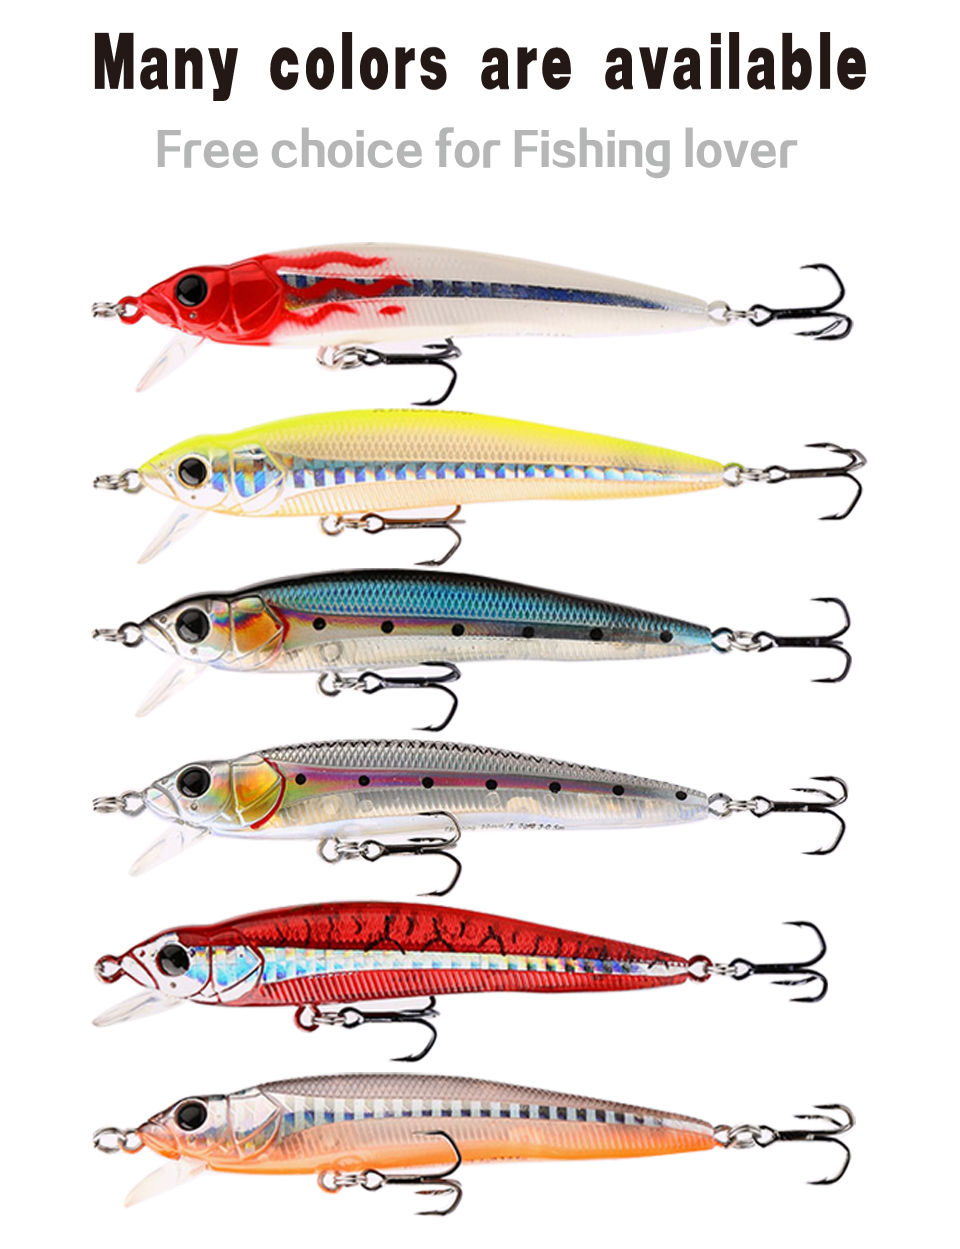 Kingdom Good Fishing Lure Floating Minnow Quality Professional 9cm 9g swim bait equipped 3x stong angle treble hooks model 5339 (2)